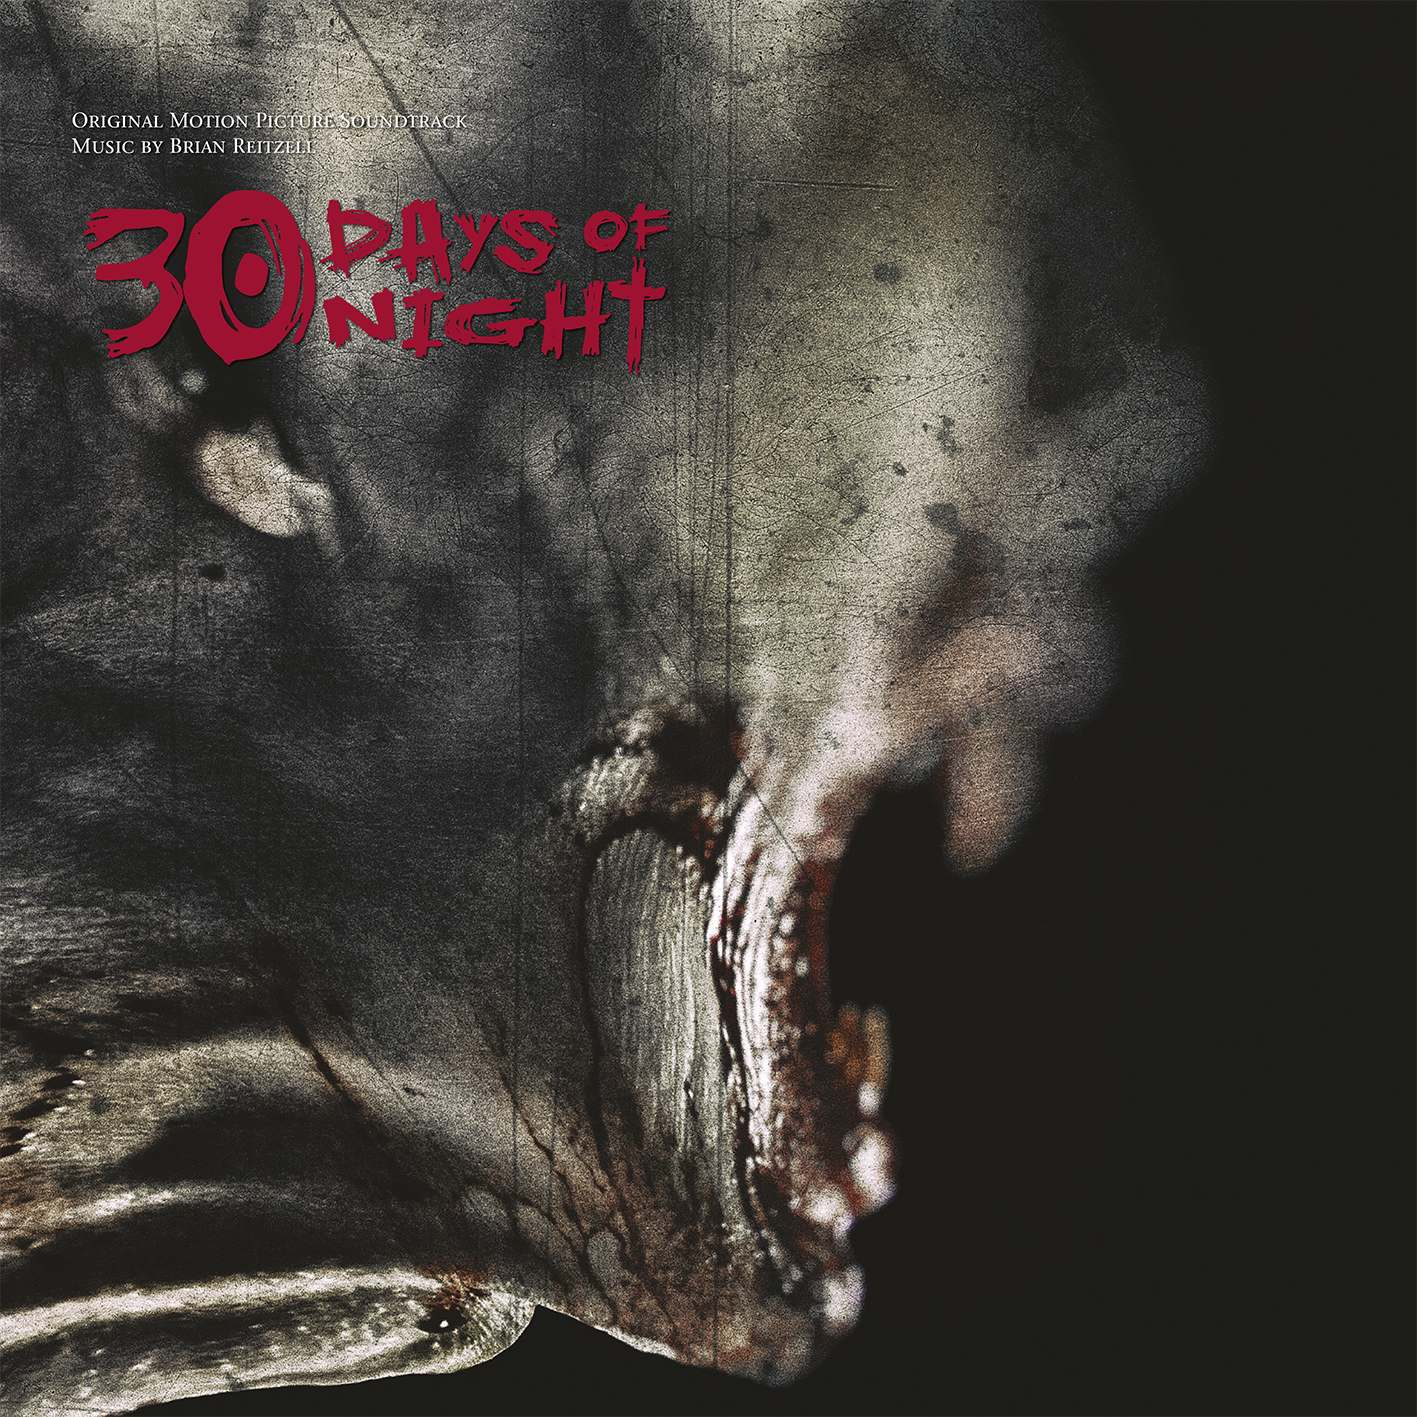 - 30 Days of Night (Original Motion Picture Soundtrack)